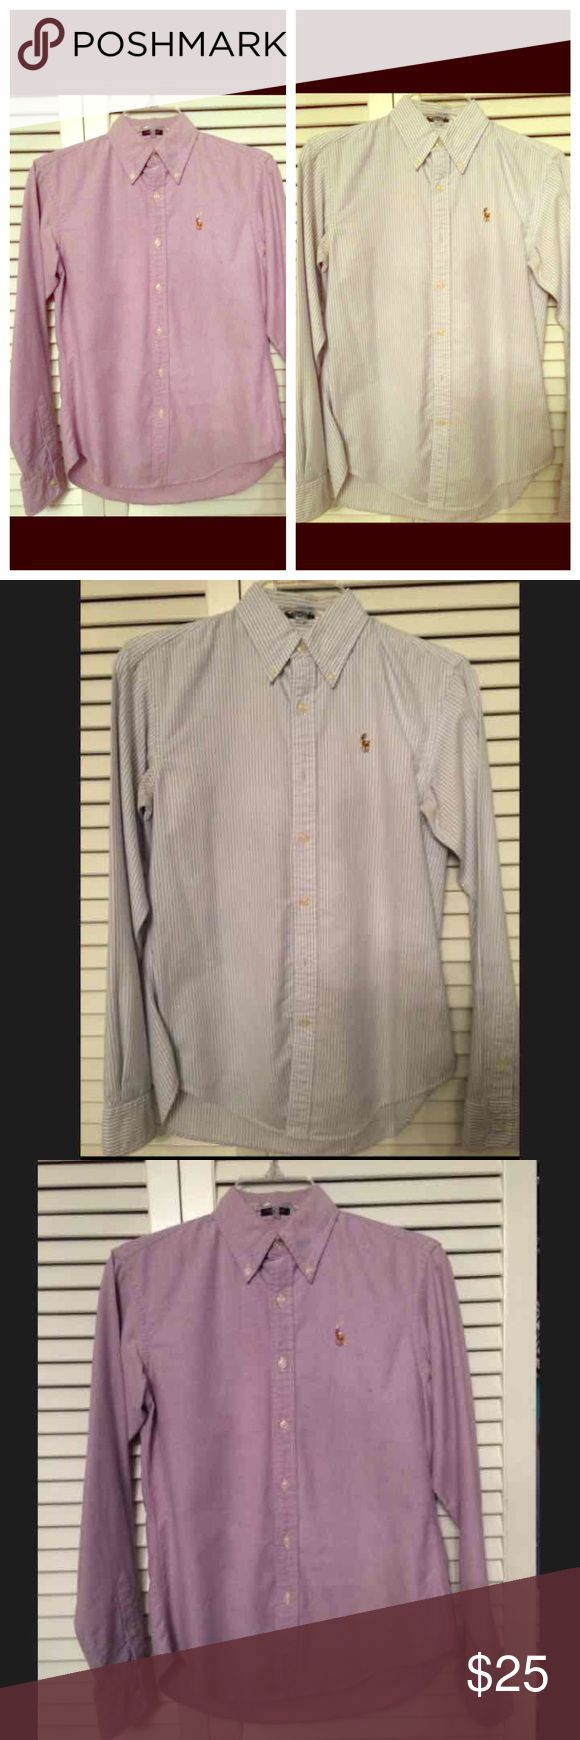 Bundle Ralph Lauren oxford shirt Bundle Women's Ralph Lauren polo button down classic fit lavender purple oxford and blue and white stripe. Good condition. One small pin sized mark under polo horse on purple shirt blouse  Bundle and save. Willing to accept reasonable offers on most items. All buttons still in tact Ralph Lauren Tops Button Down Shirts